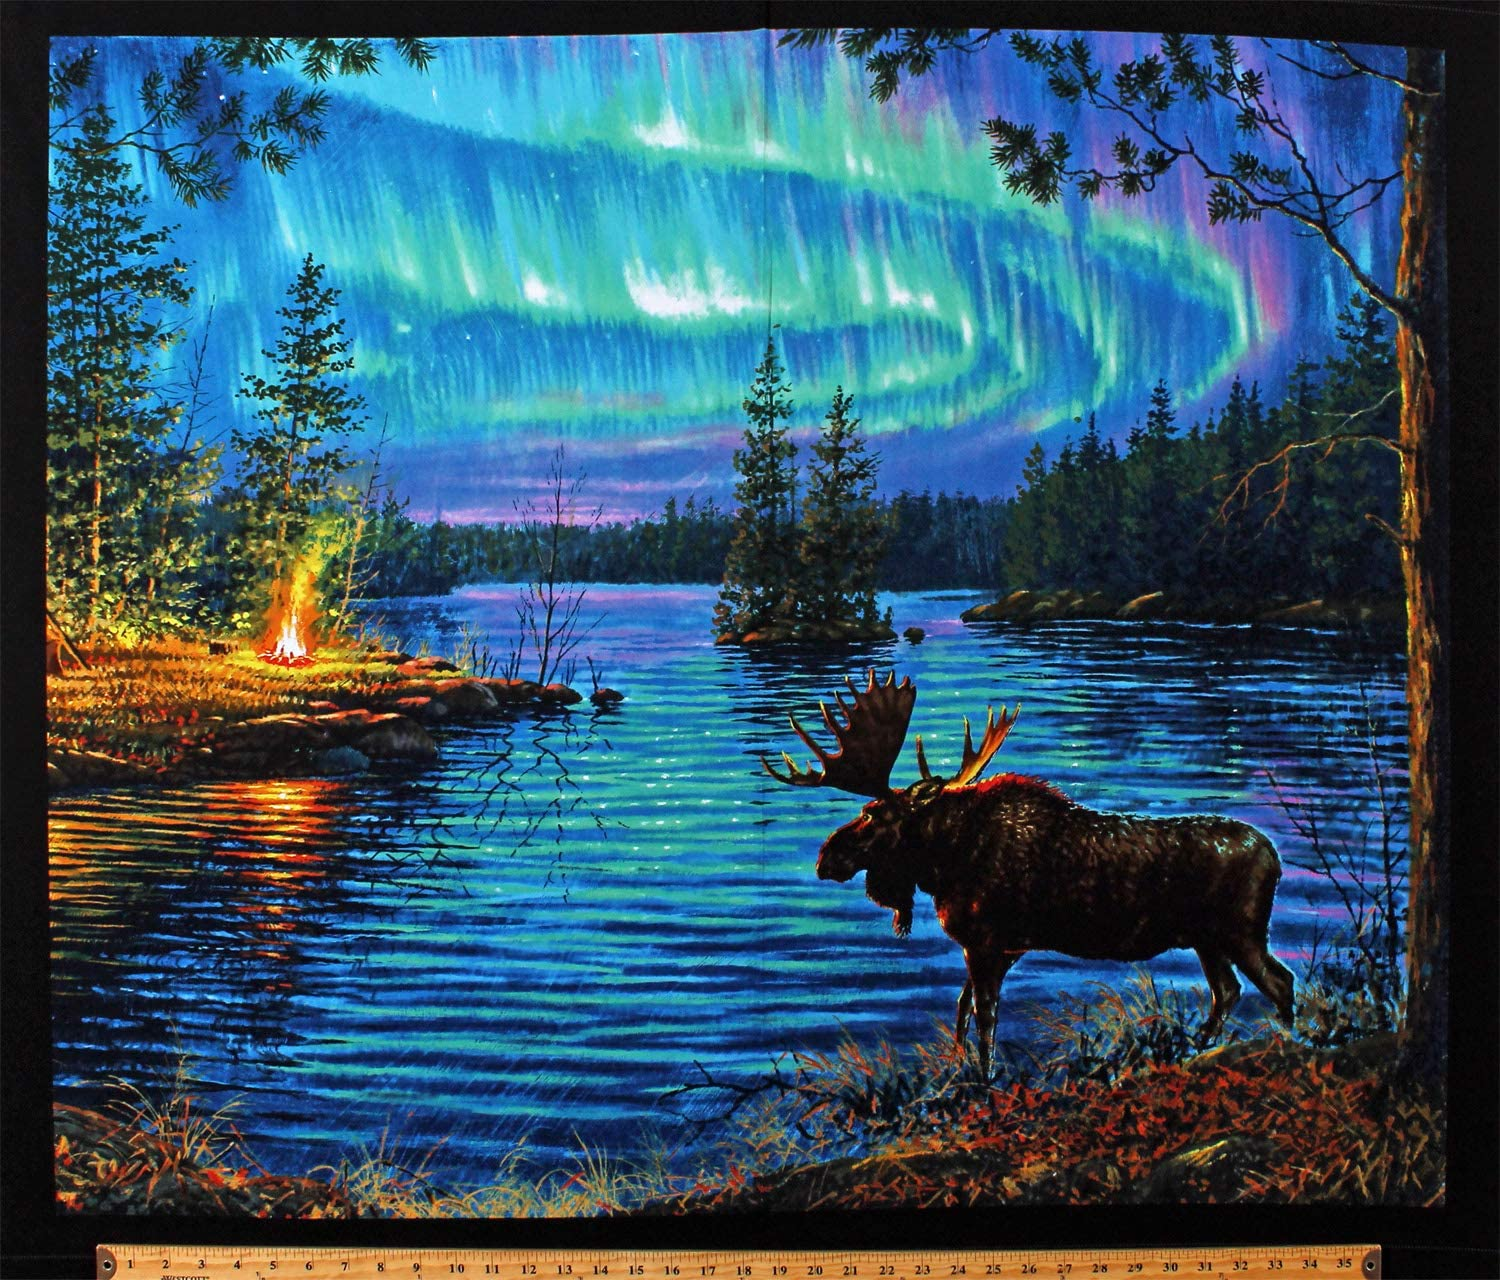 "35"" X 44"" Panel Moose Northern Lights Northwoods Landscape Campfire Aurora Borealis Camping Lake Nature Scenic Cotton Fabric Panel (D762.46)"